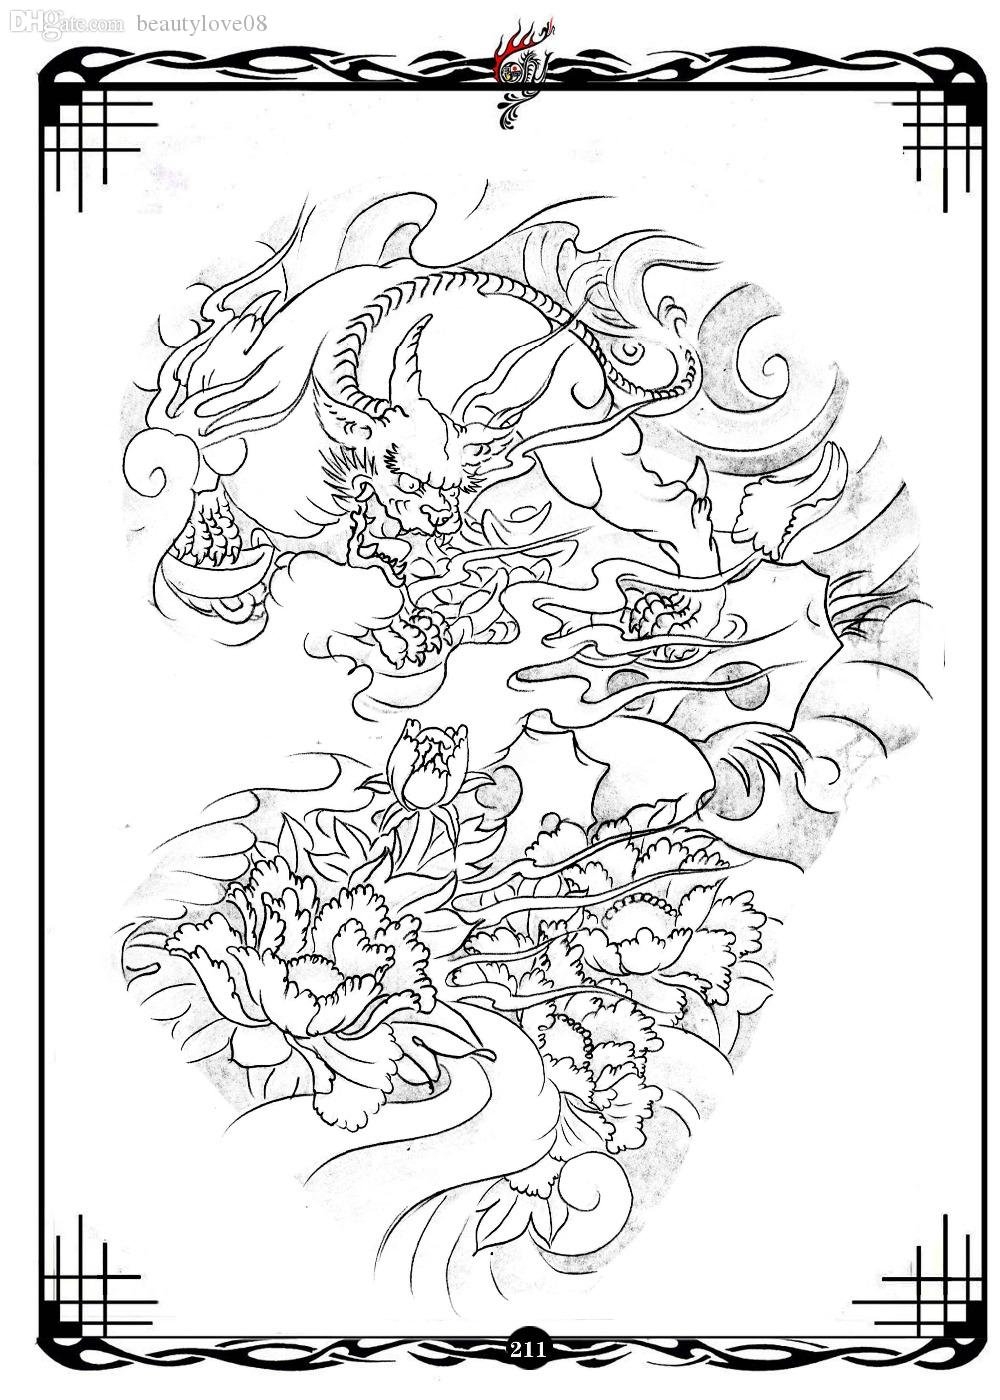 wholesale pdf format tattoo book traditional tattoo 49 pgs flower pattern kind of skull tattoo flash tattoo designs sketch airbrush face painting stencils - Tattoo Coloring Book Pdf